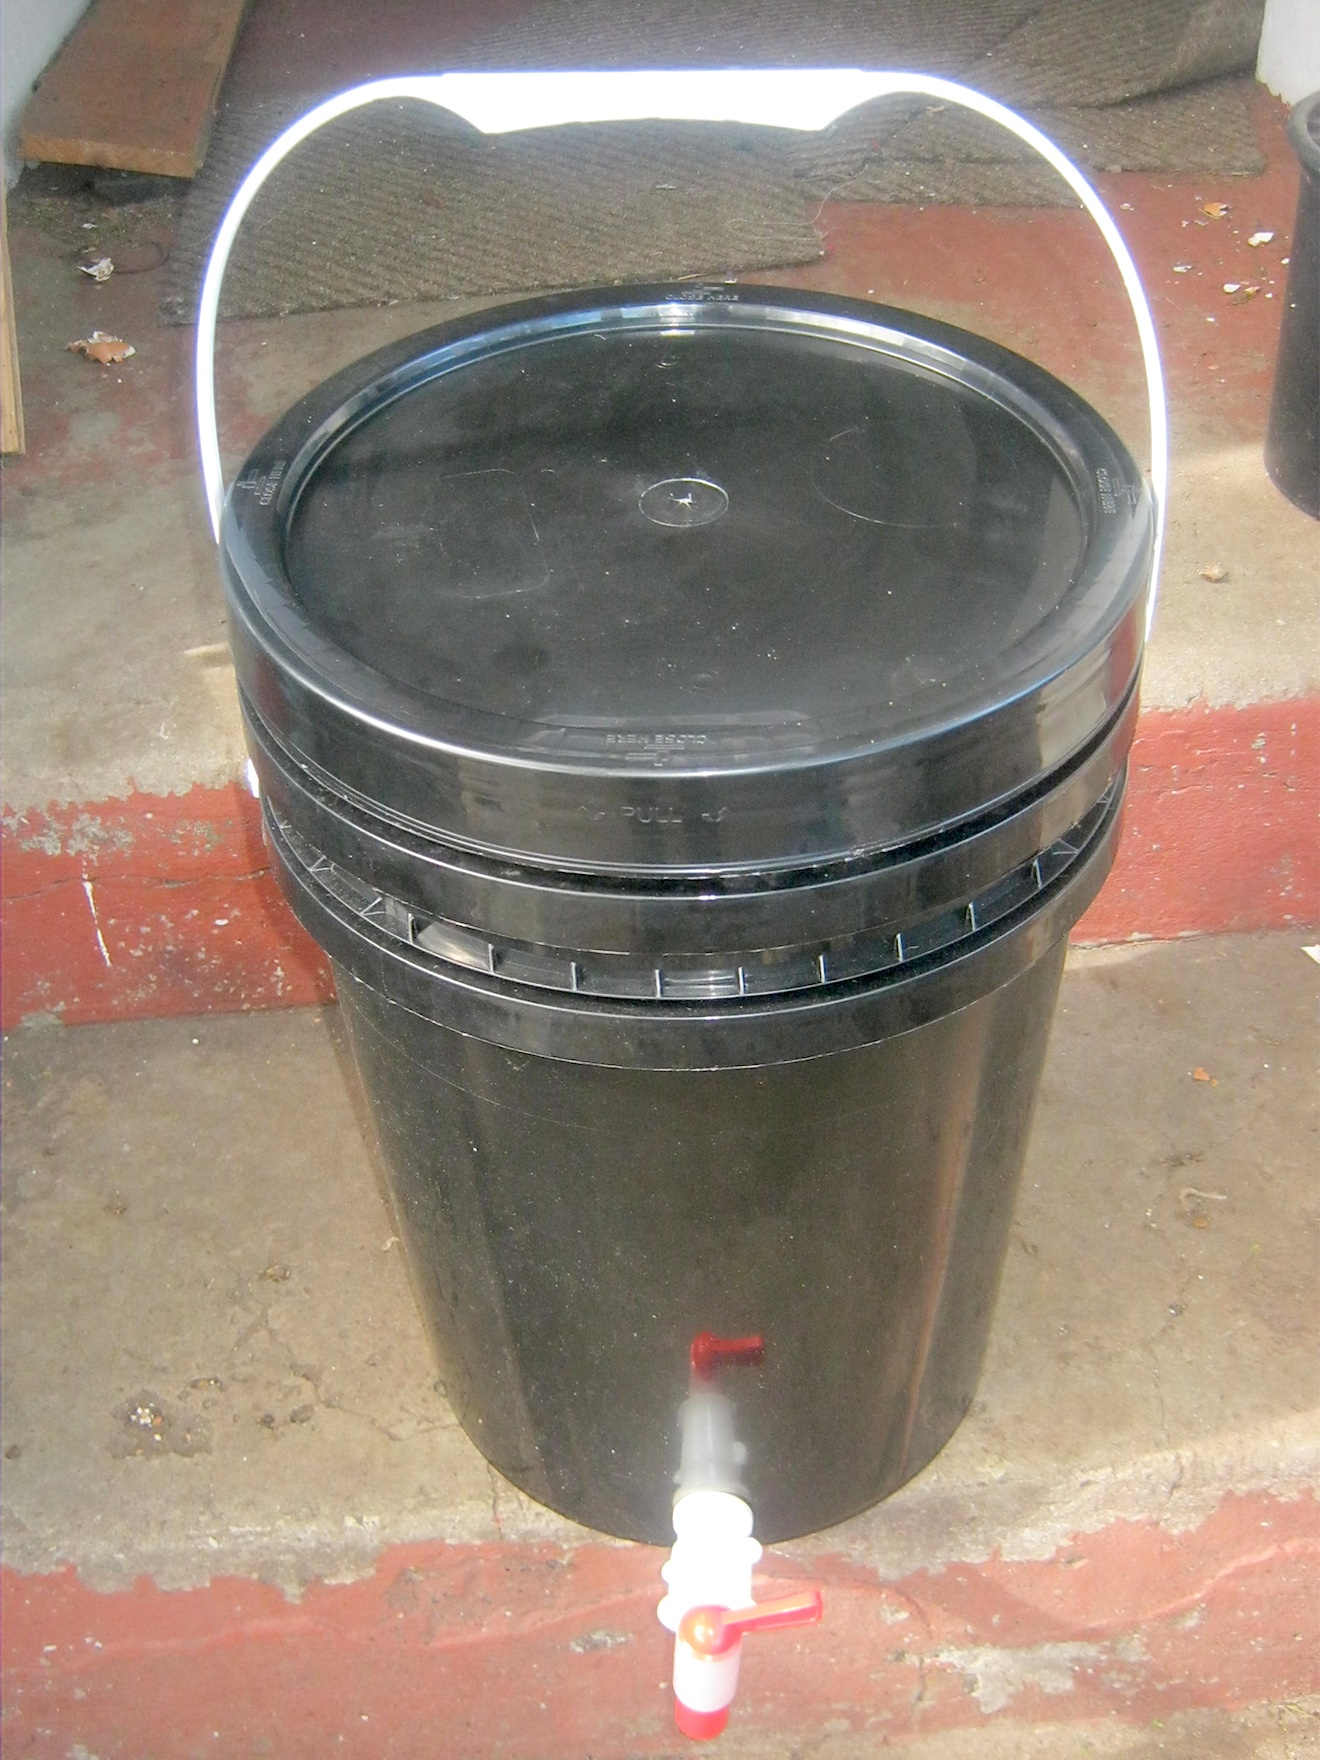 Two bin worm farm with drainage container, air holes, lid and tap to release worm tea and extra liquids.